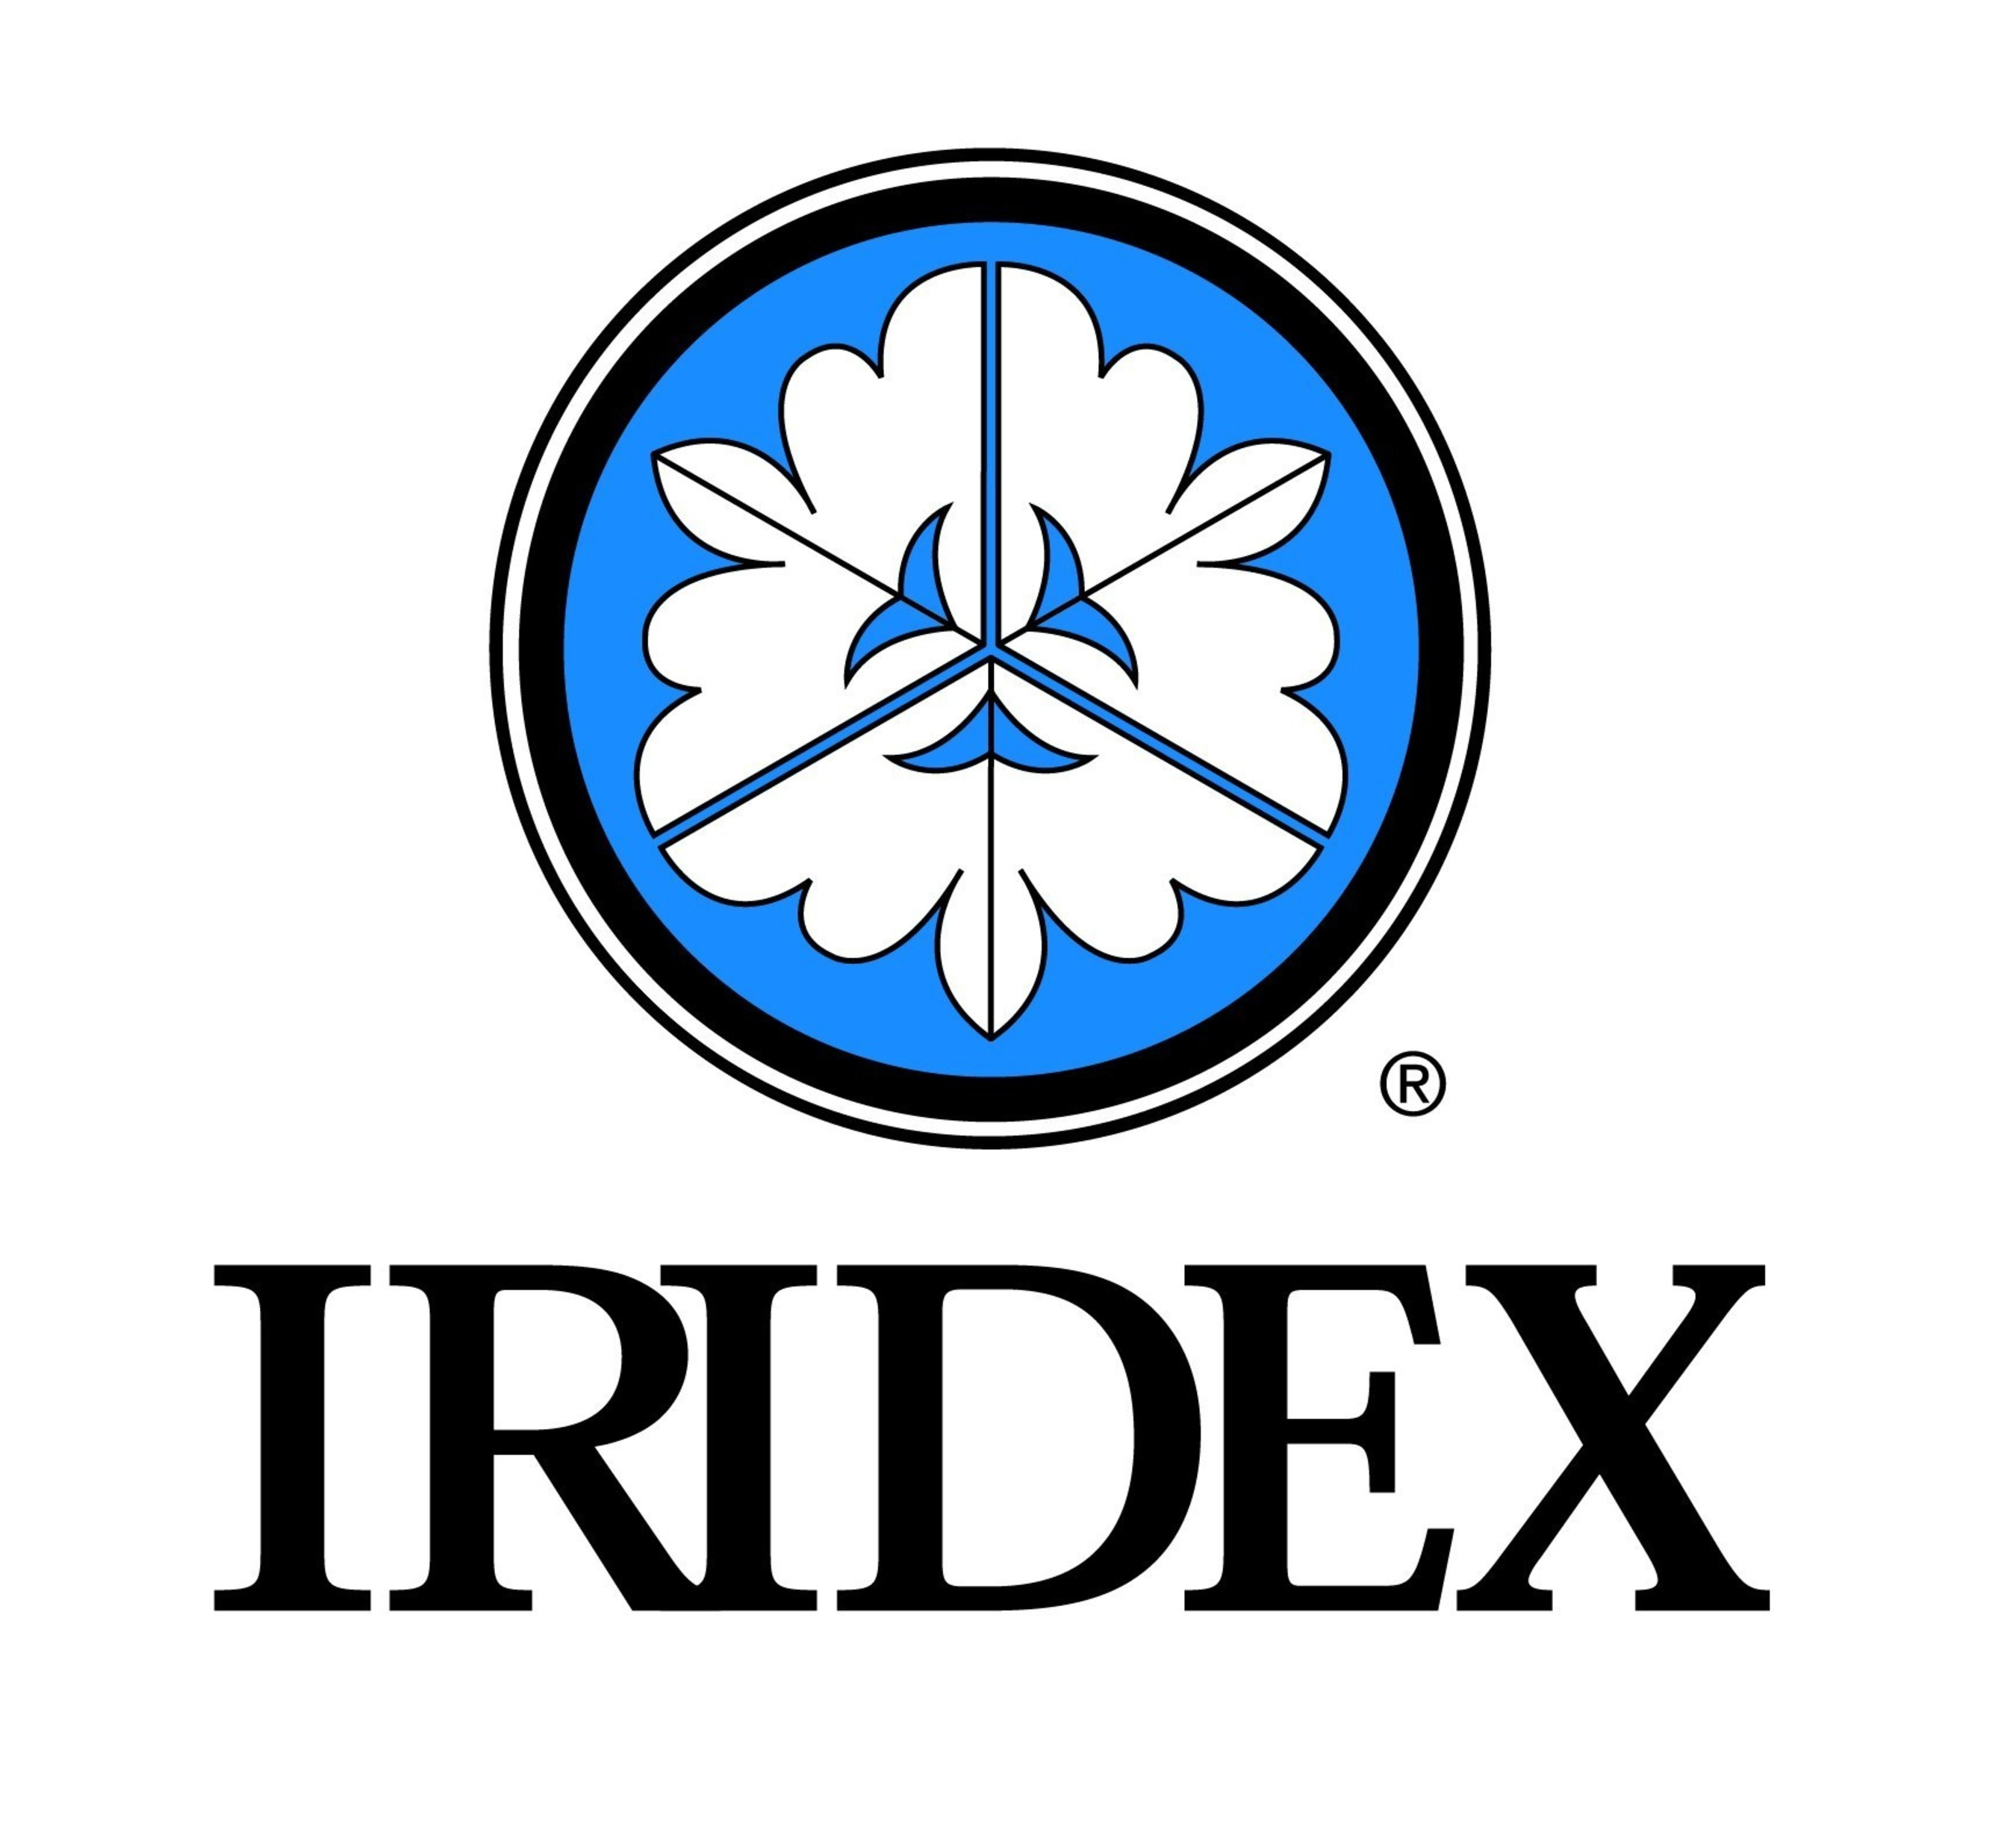 IRIDEX Corporation logo.